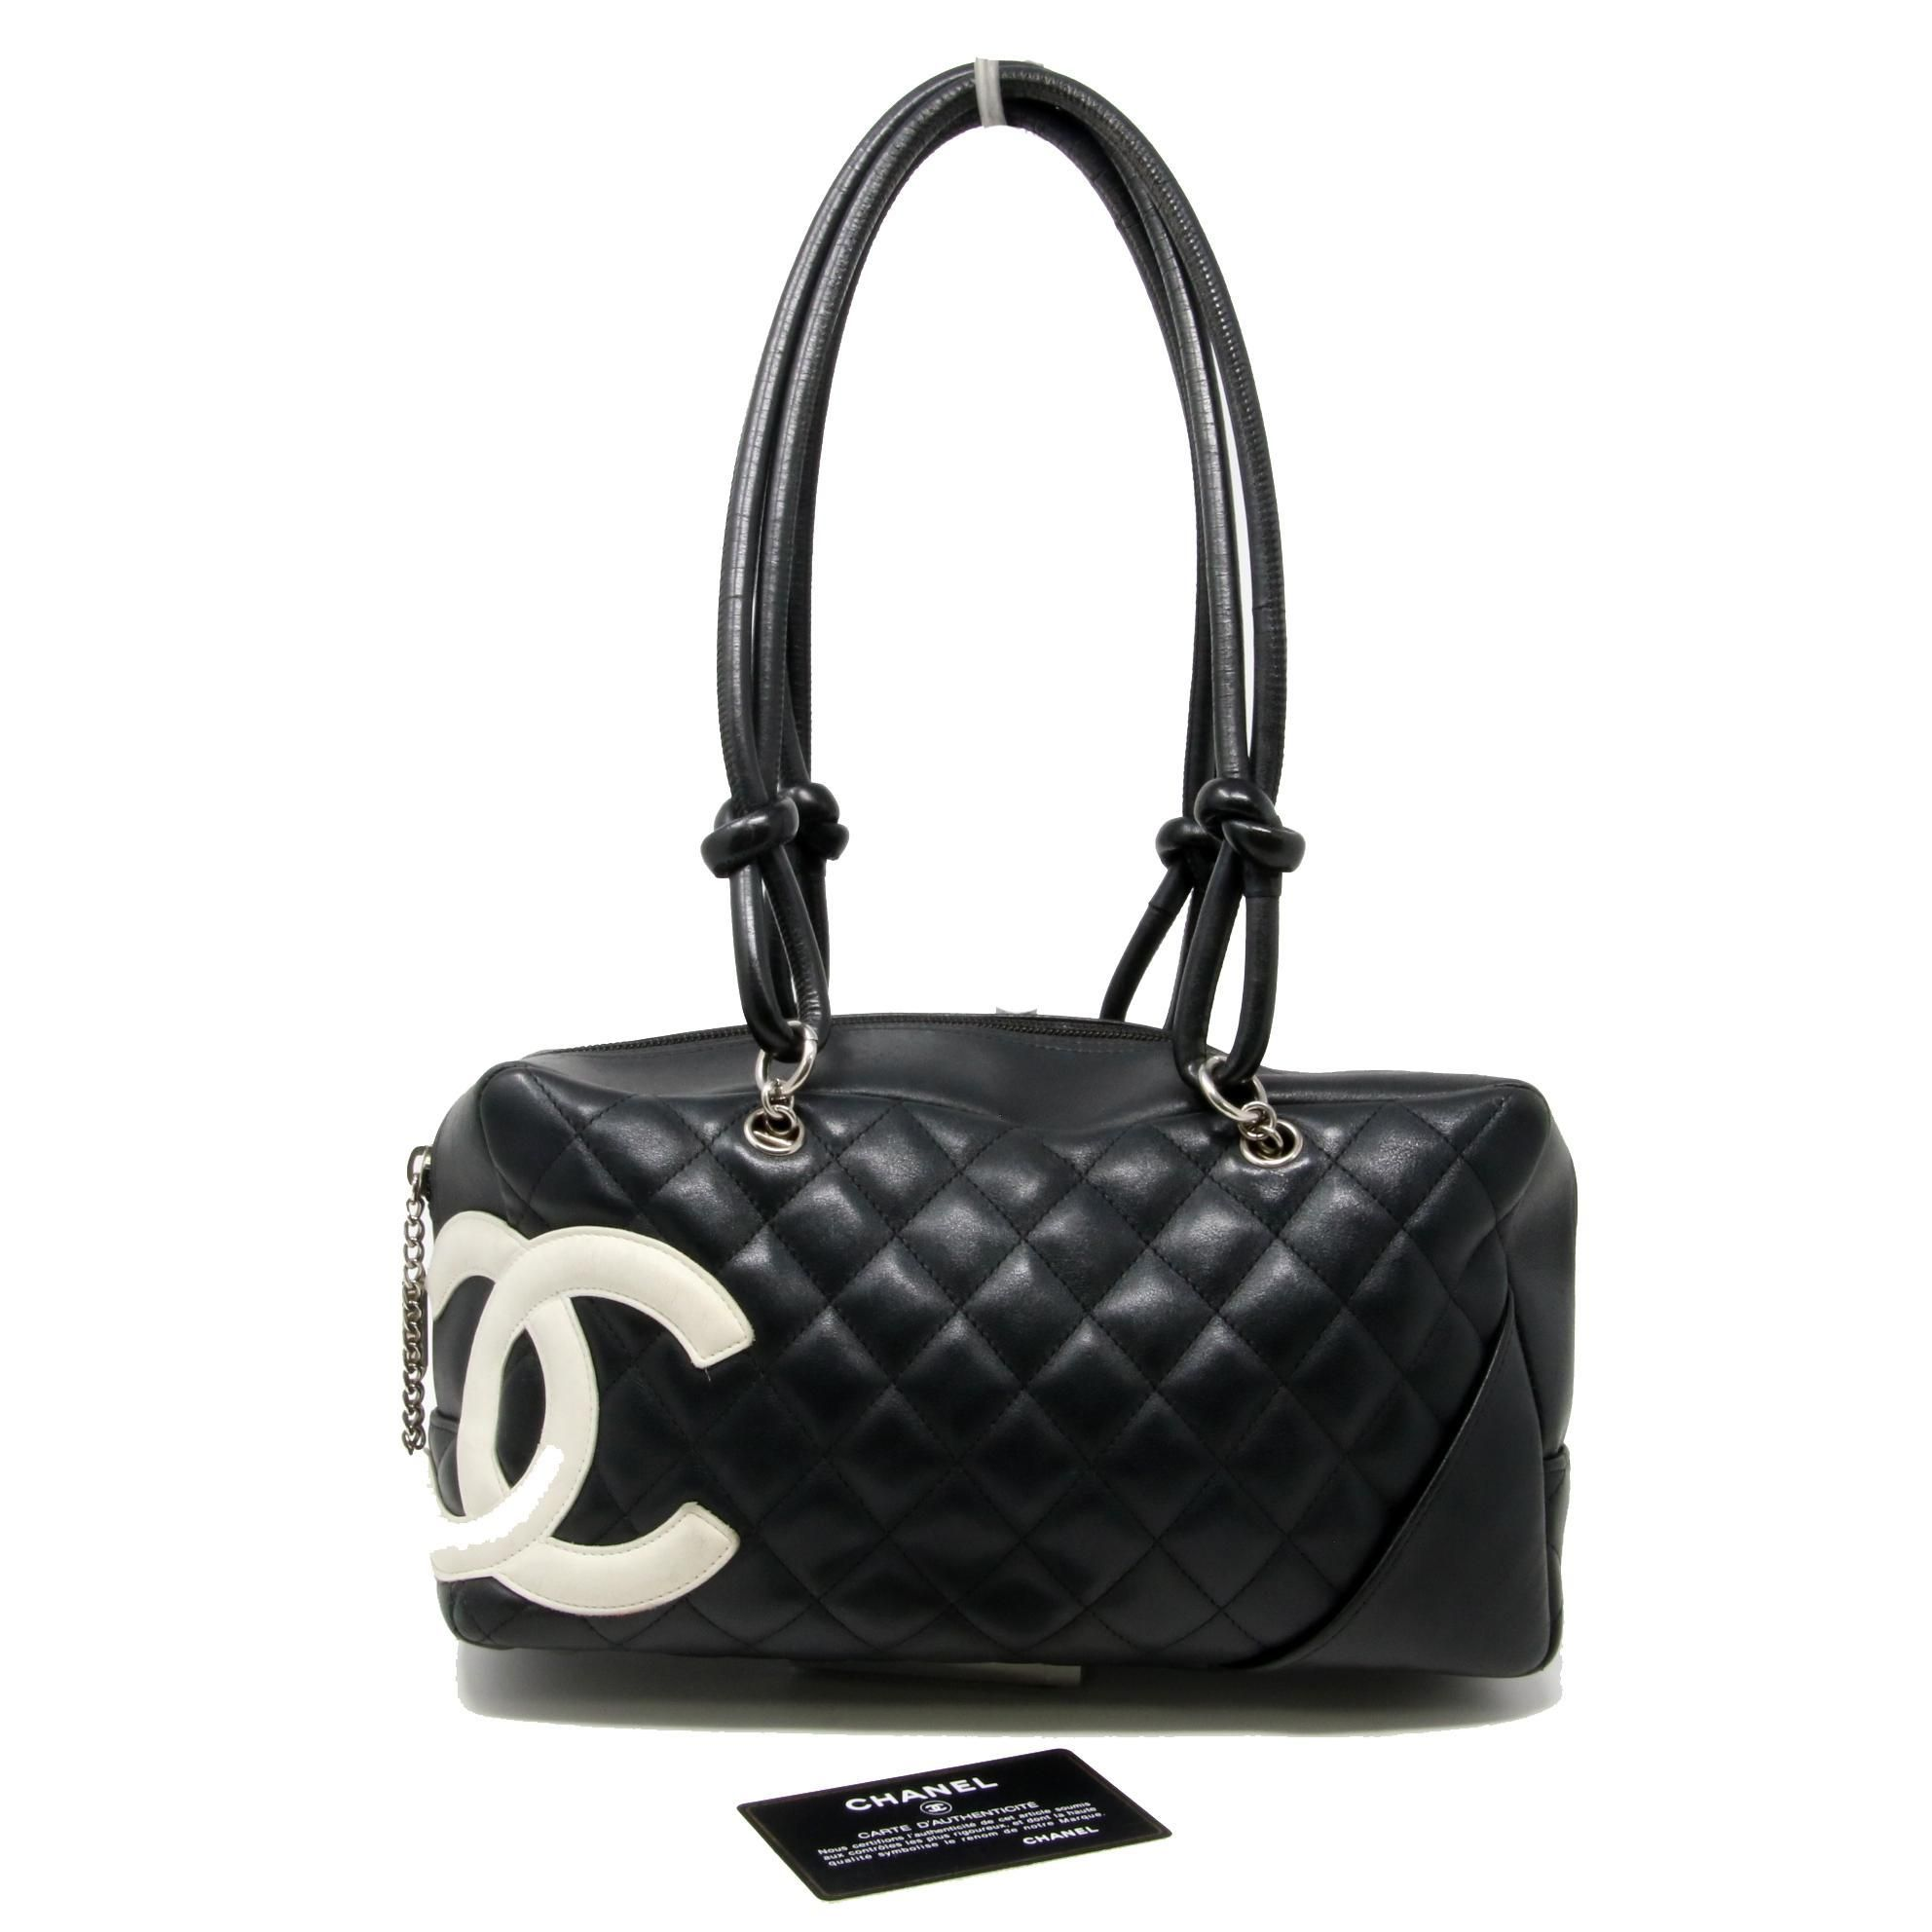 d5d0880e181394 Chanel Cambon Classic Cc Diamond Quilted Ligne Mini Bowling Black Calfskin  Leather #lv #louboutin #losangeles #luxurylife #birkin #luxurybag #givenchy  ...